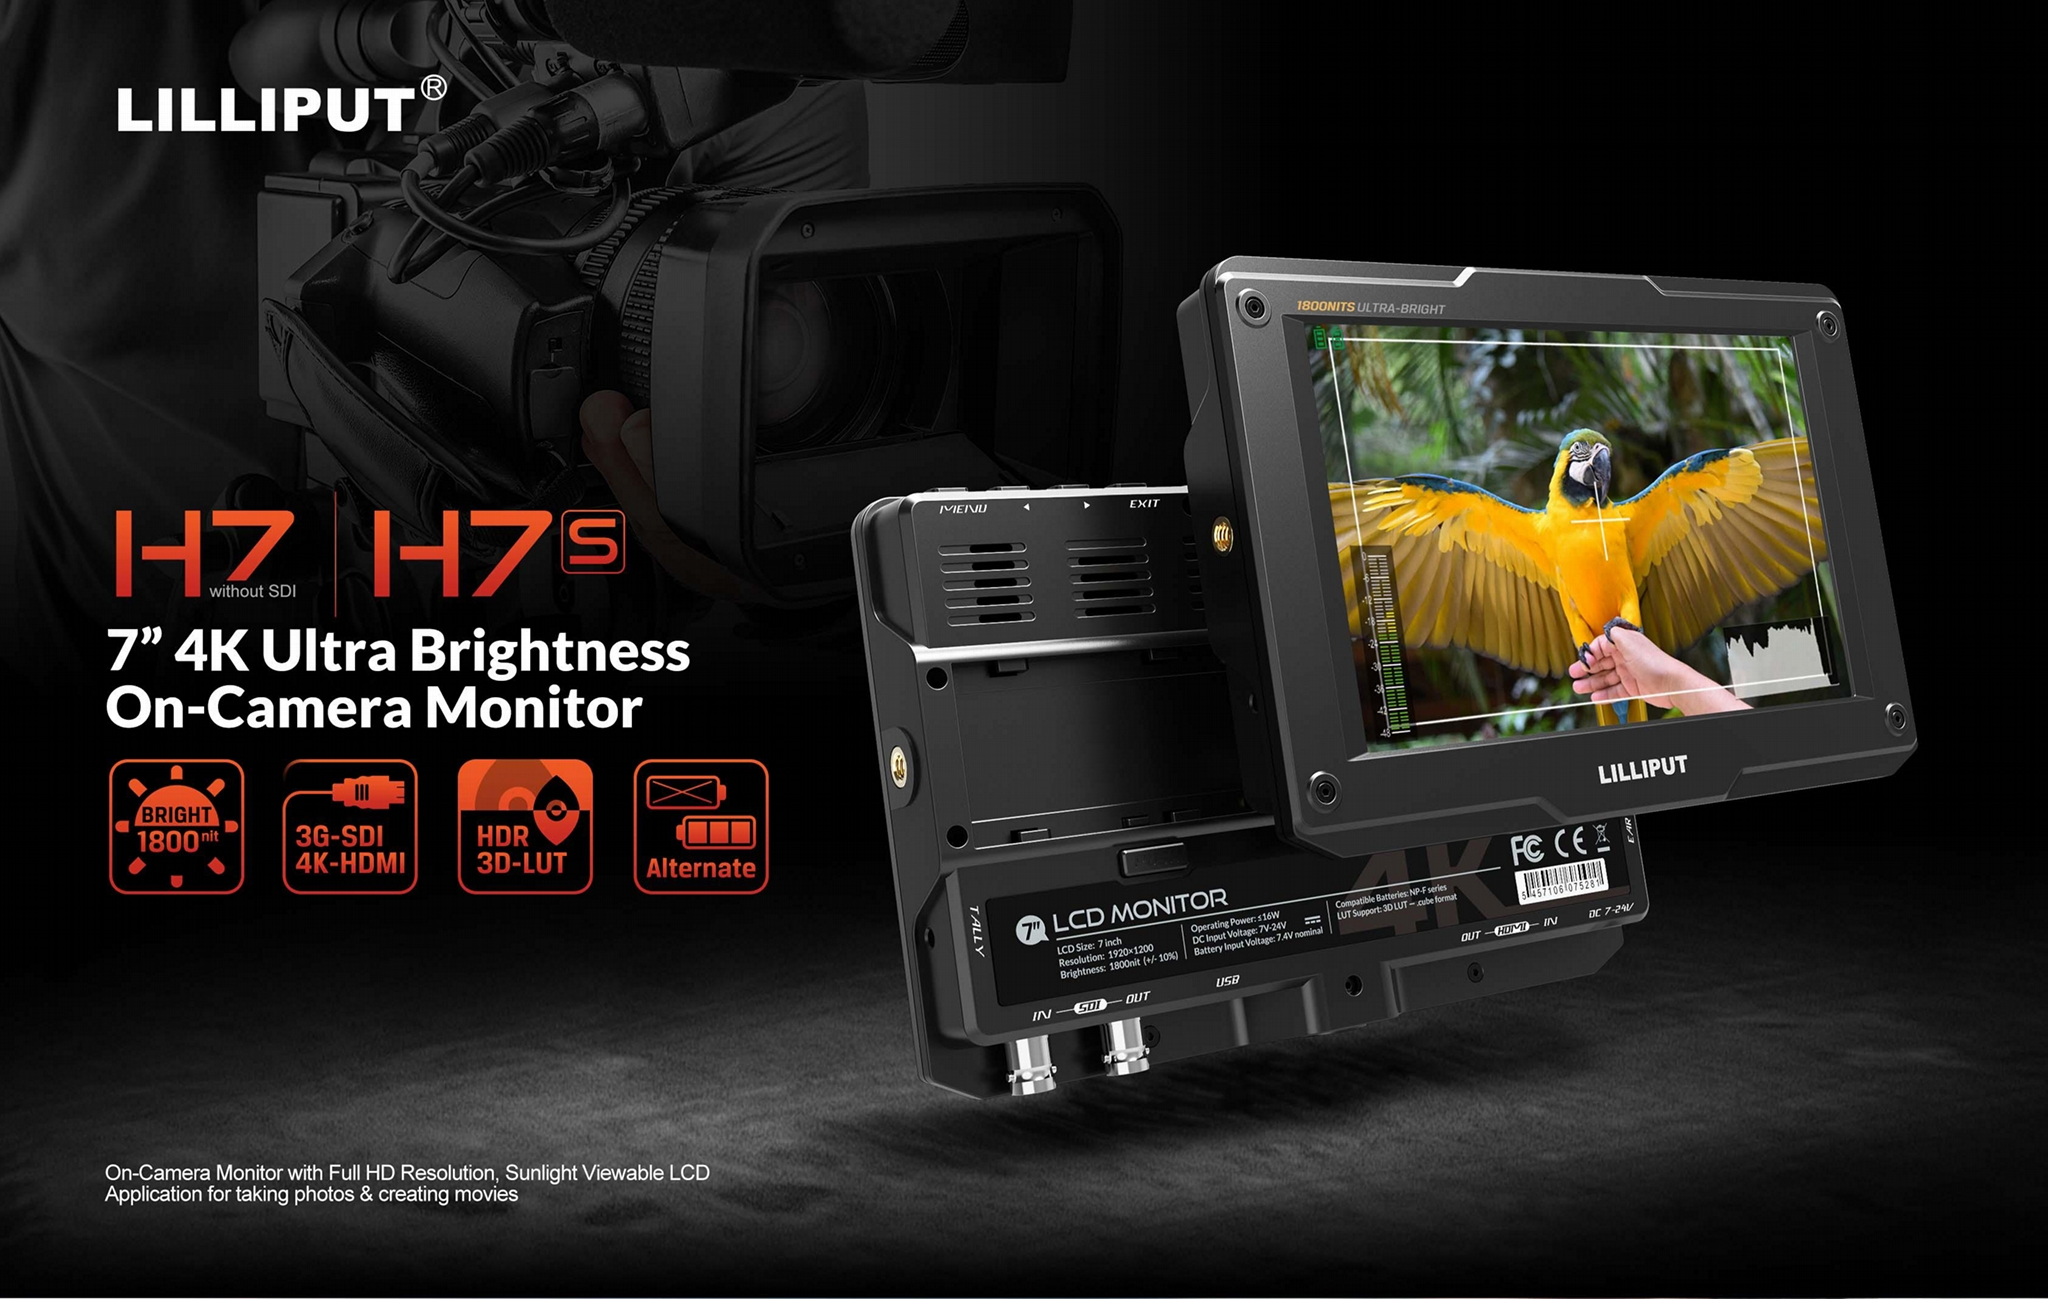 LILLIPUT H7 4K Ultra Brightness 7 inch Camera Monitor with HDR, 3D-LUT, Color sp 4